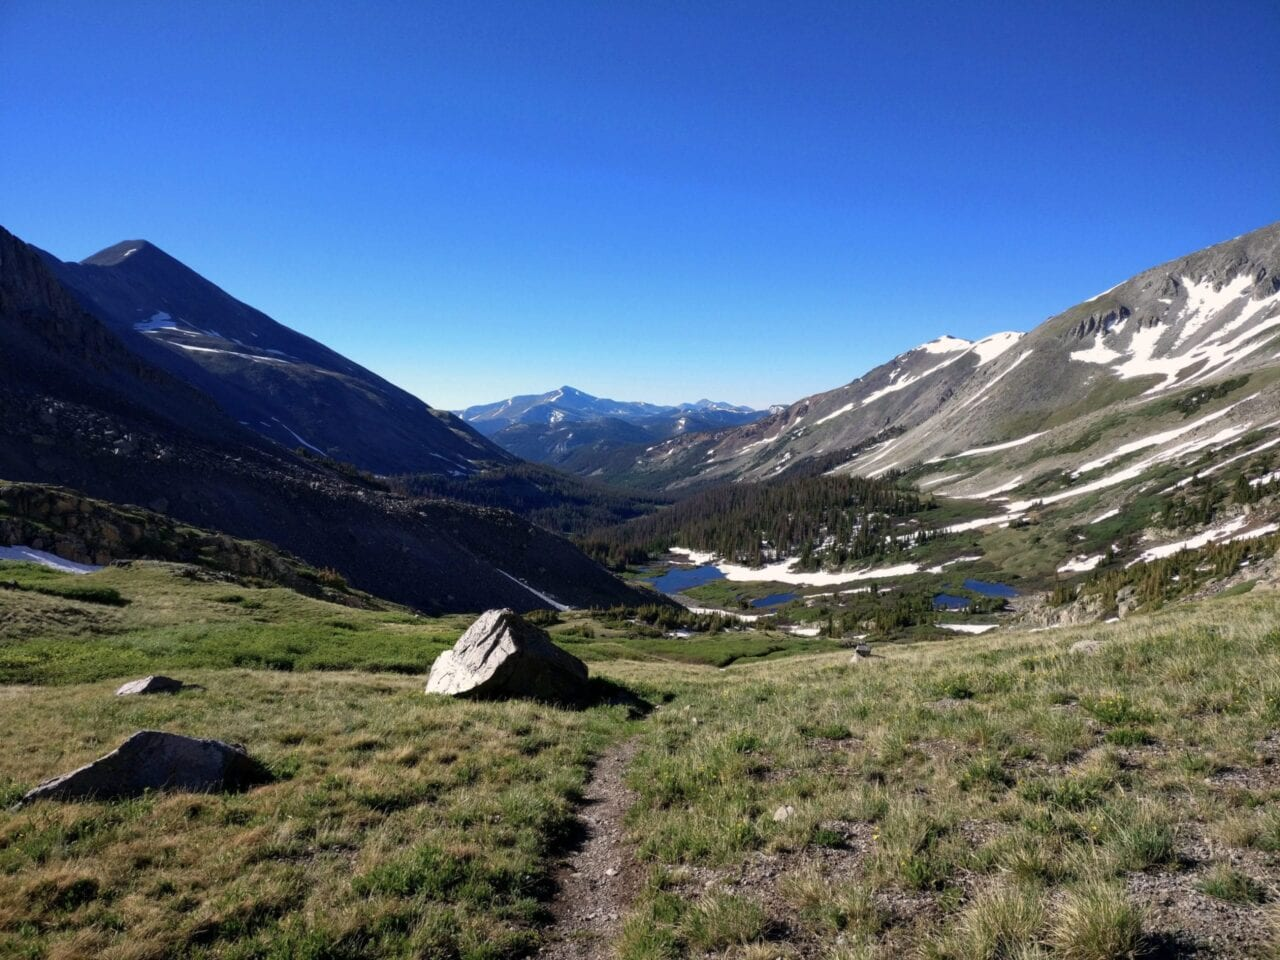 A trail leads through a grassy meadow to distant blue lakes and tall mountains.